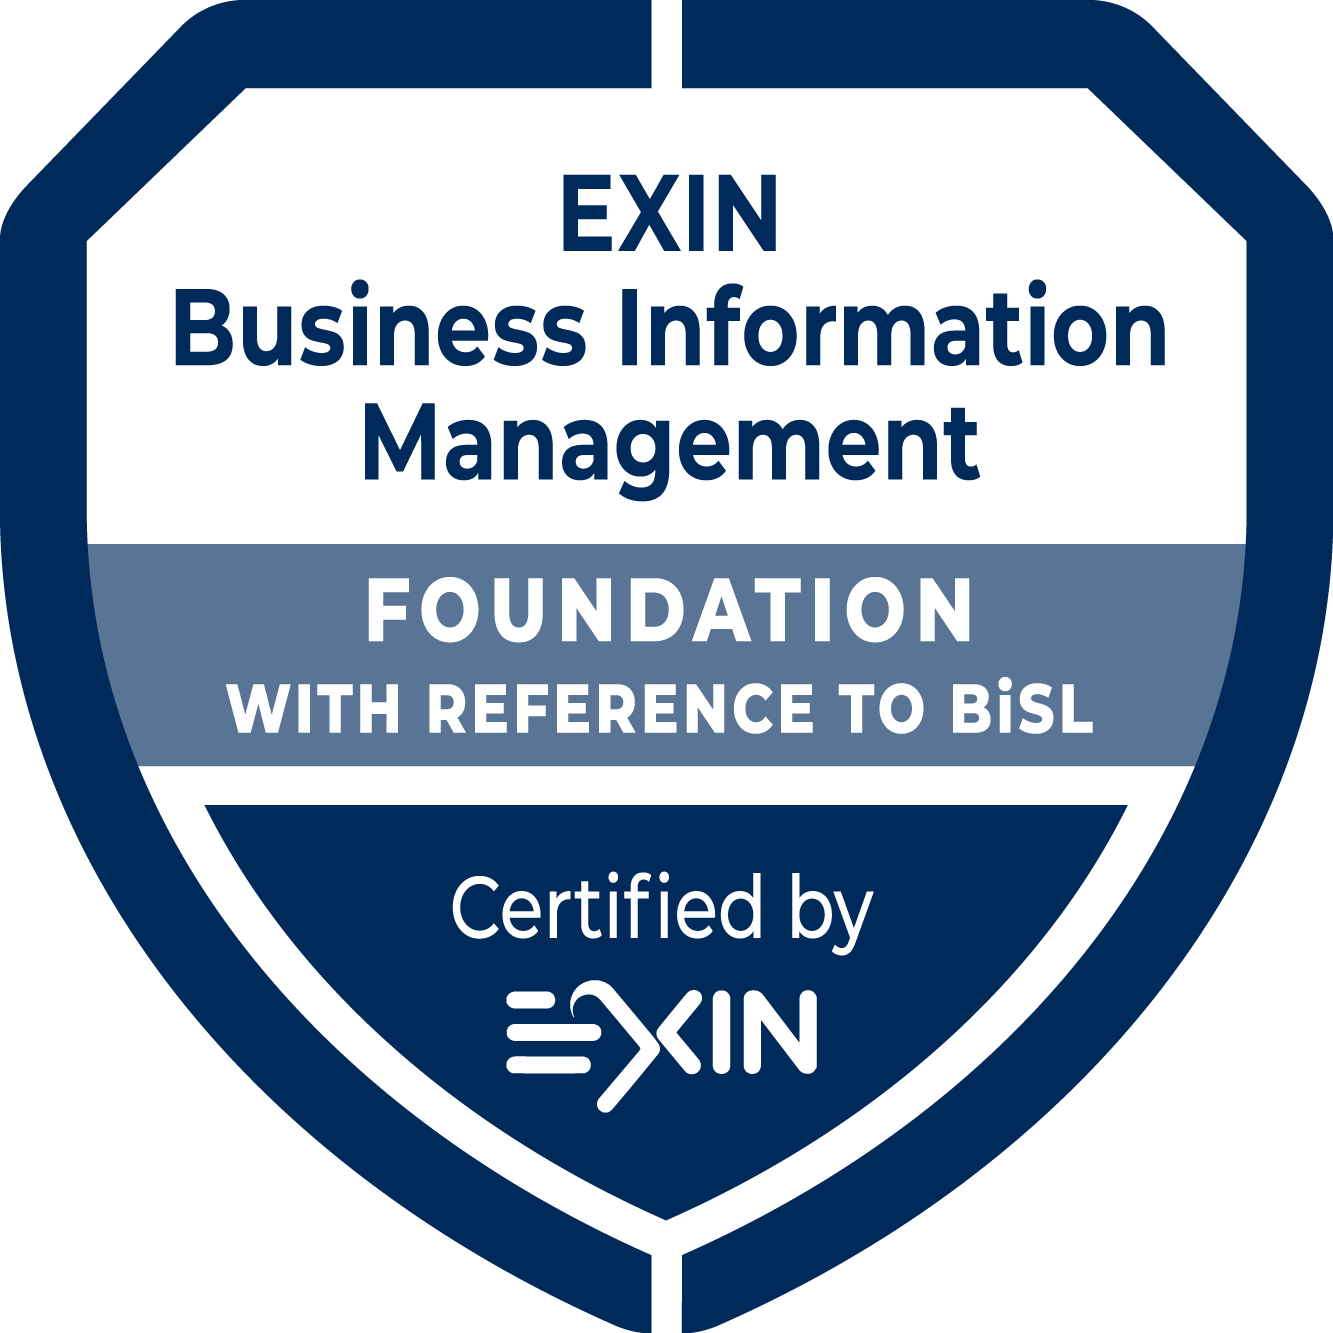 EXIN Business Information Management Foundation with reference to BISL